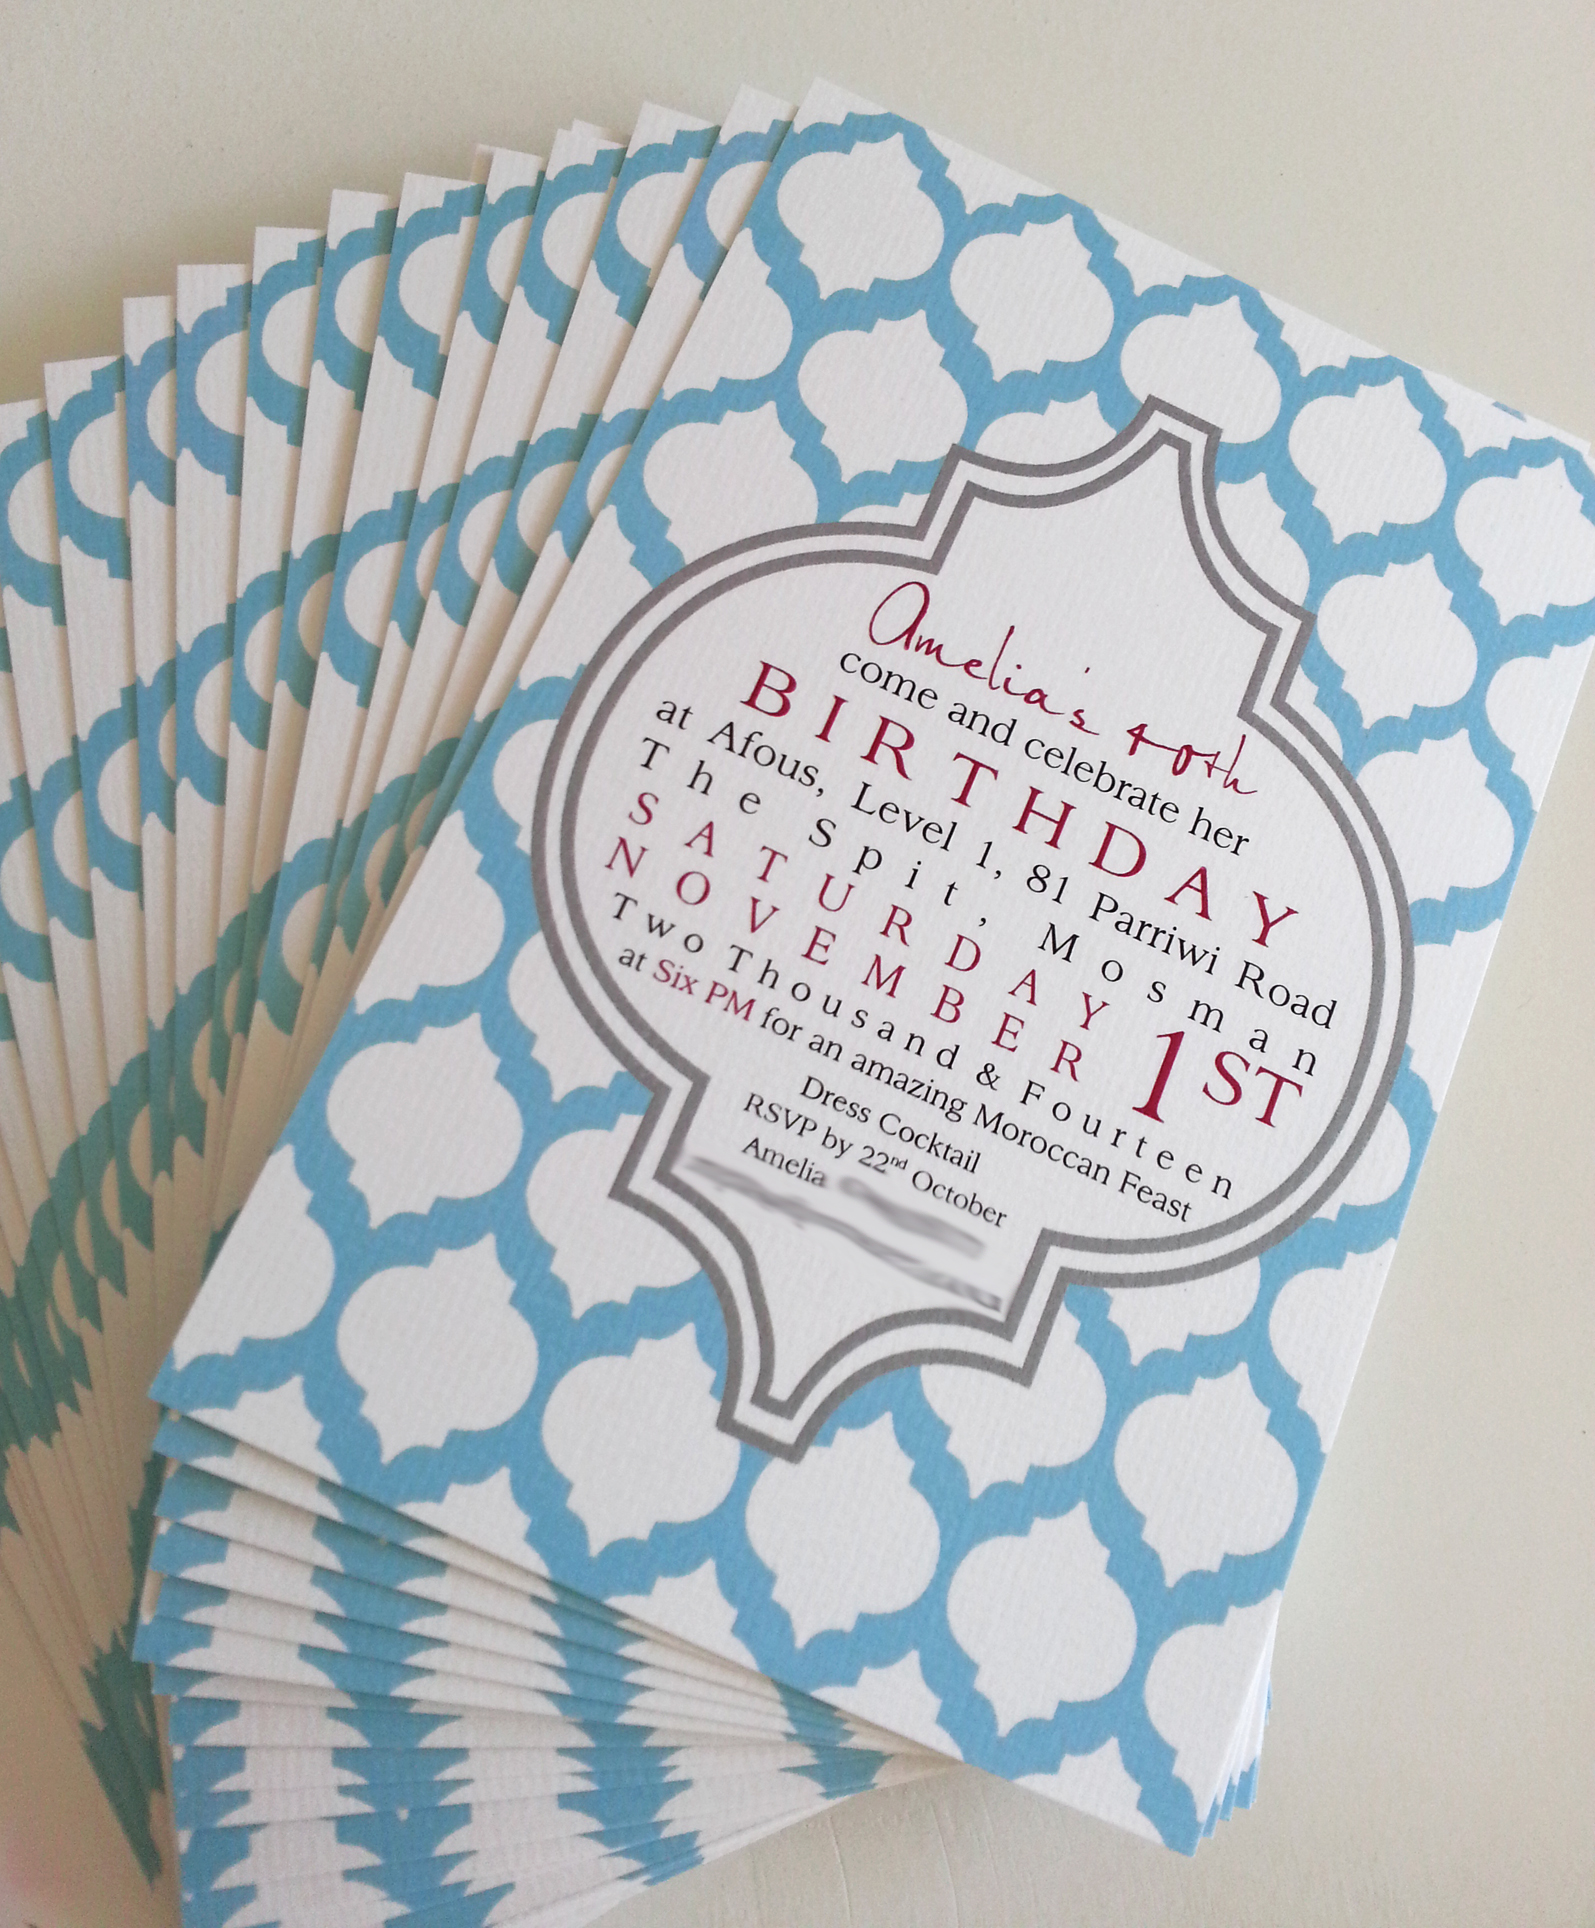 Moroccan 40th Birthday invitations sydney.jpg